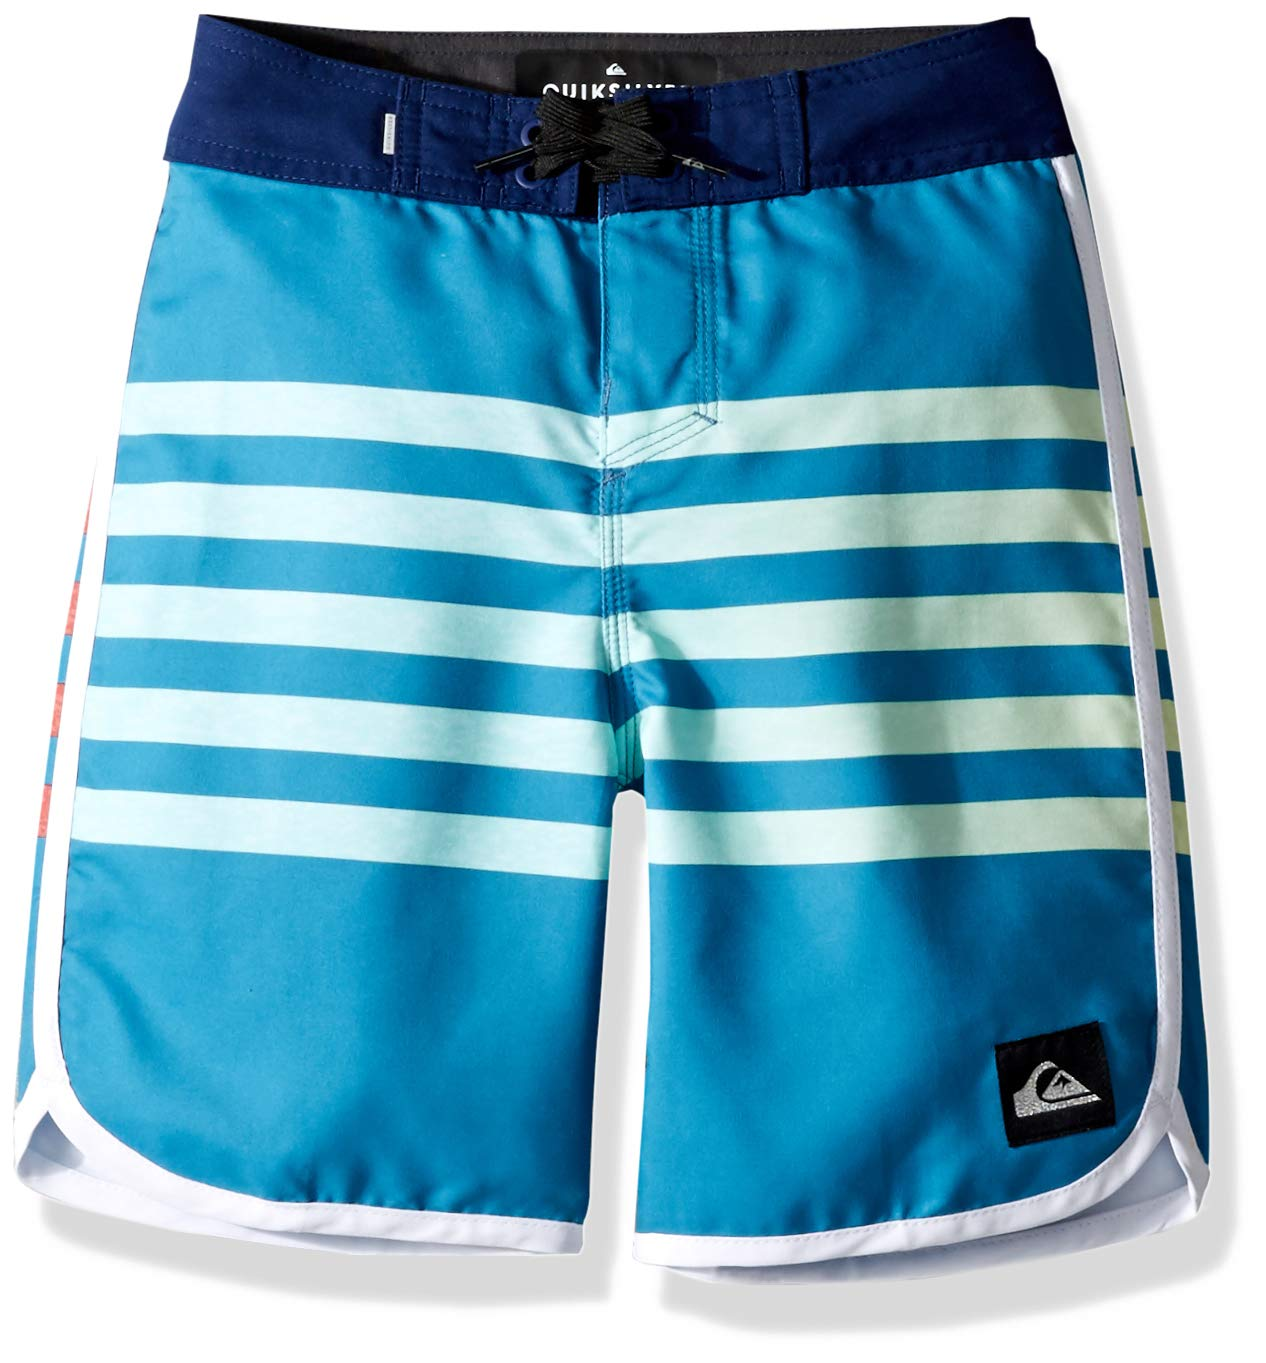 Quiksilver Boys' Big Everyday Grass Roots Youth 17 BOARSHORT Swim Trunk, Southern Ocean, 22/8S